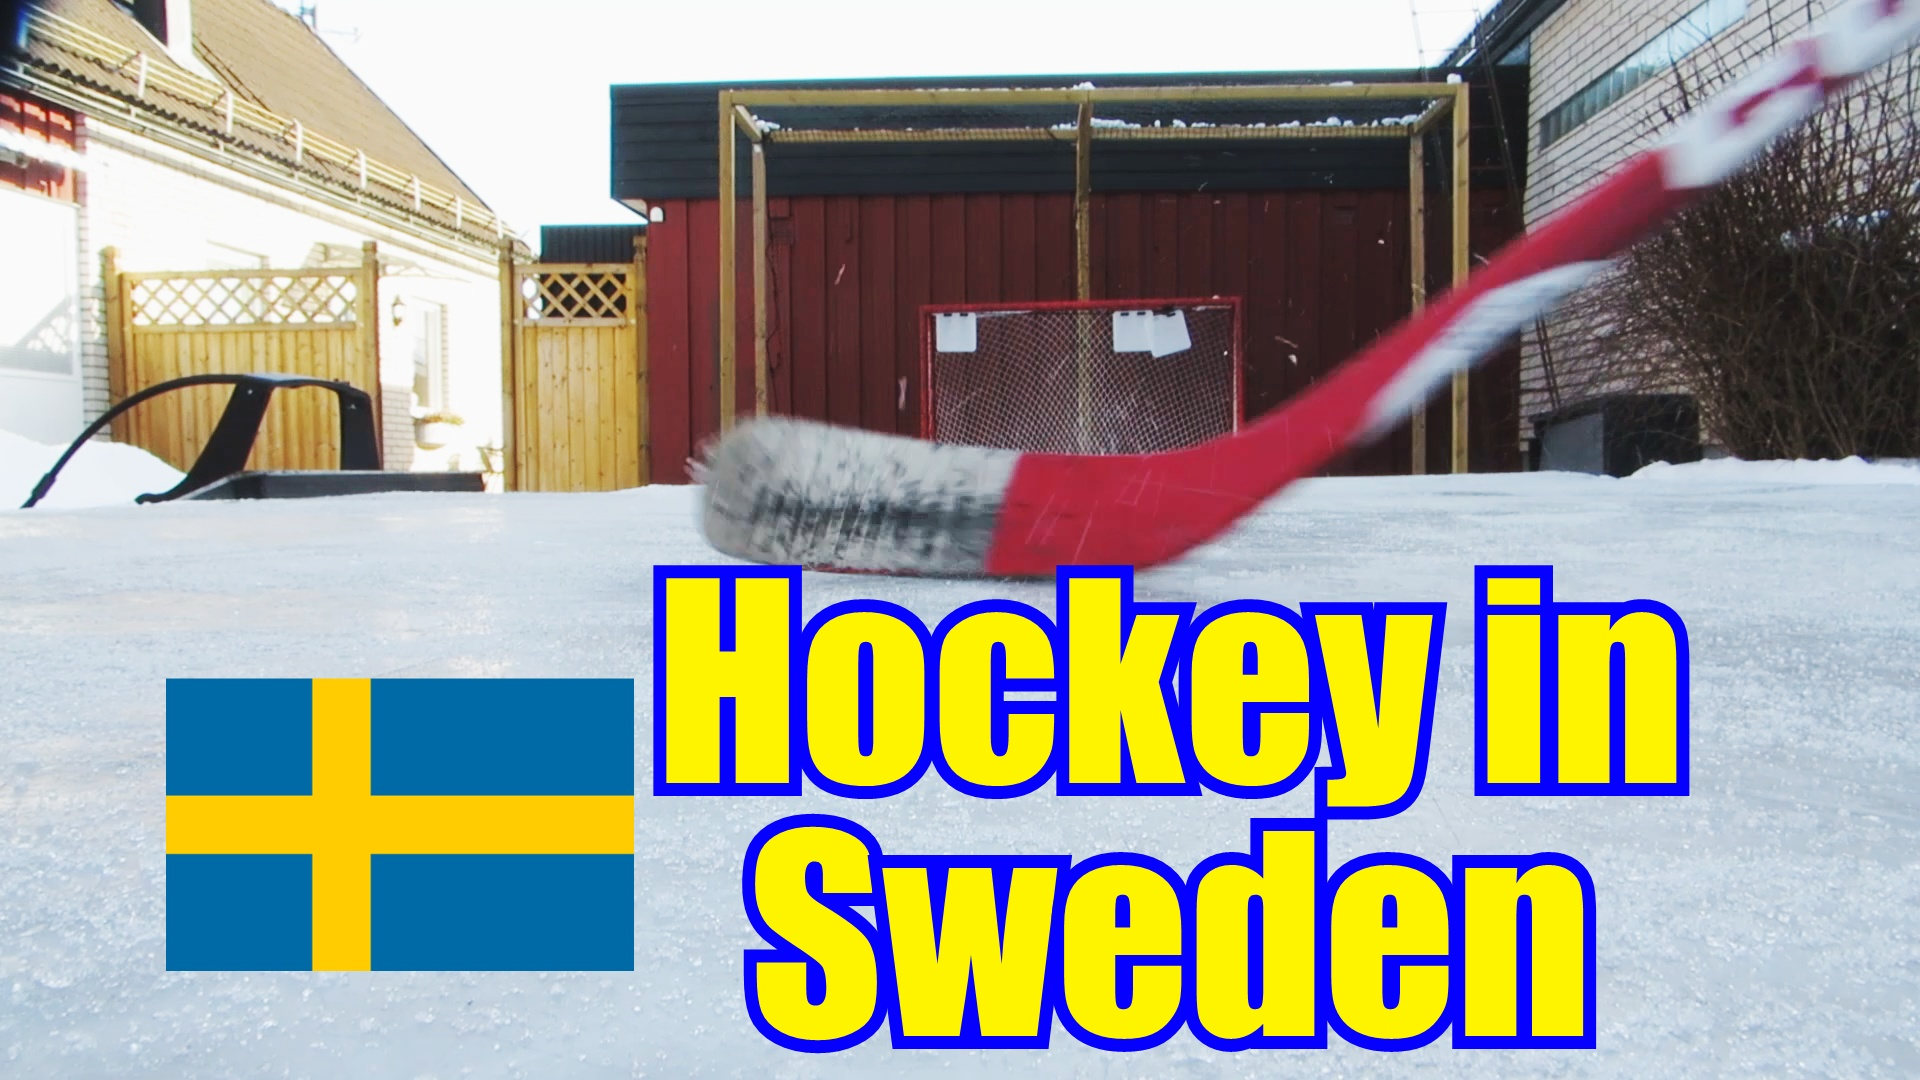 Hockey in Sweden